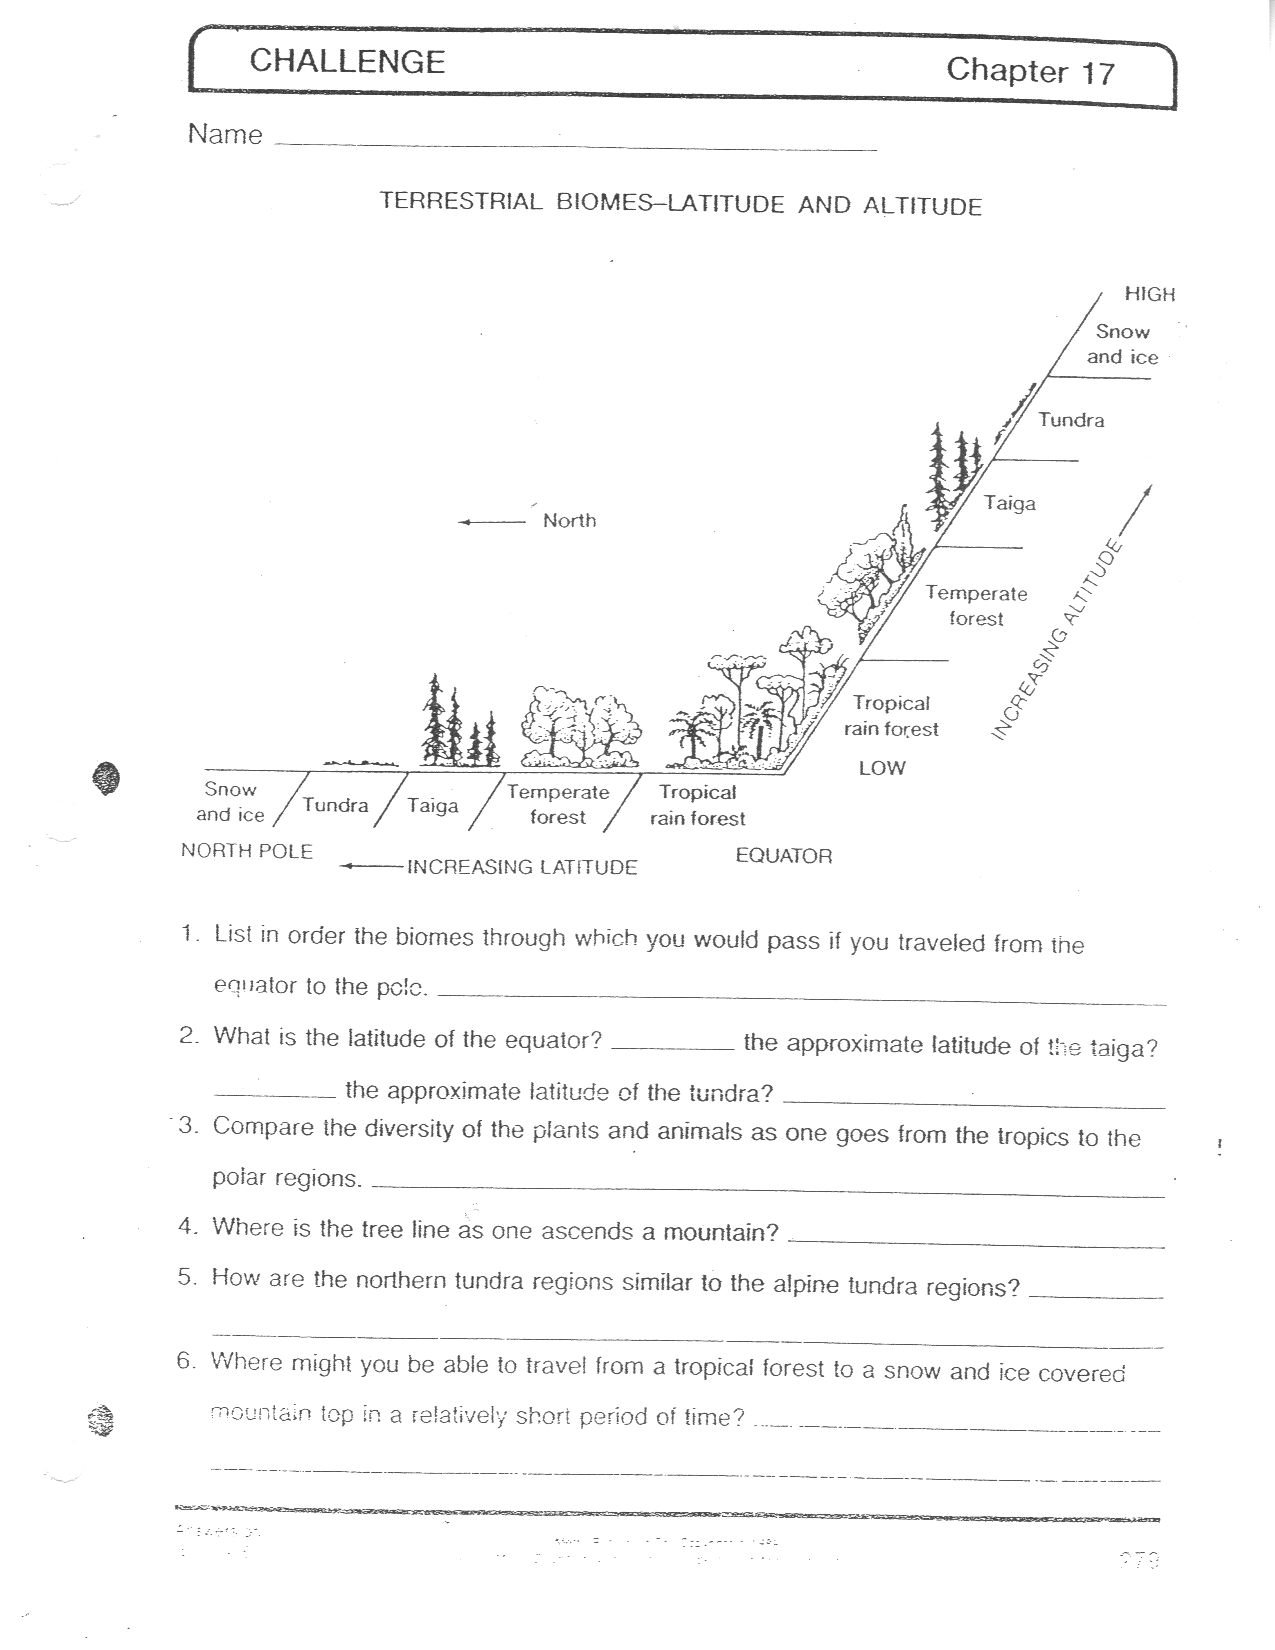 Printable Biome Worksheets The Best Worksheets Image Collection